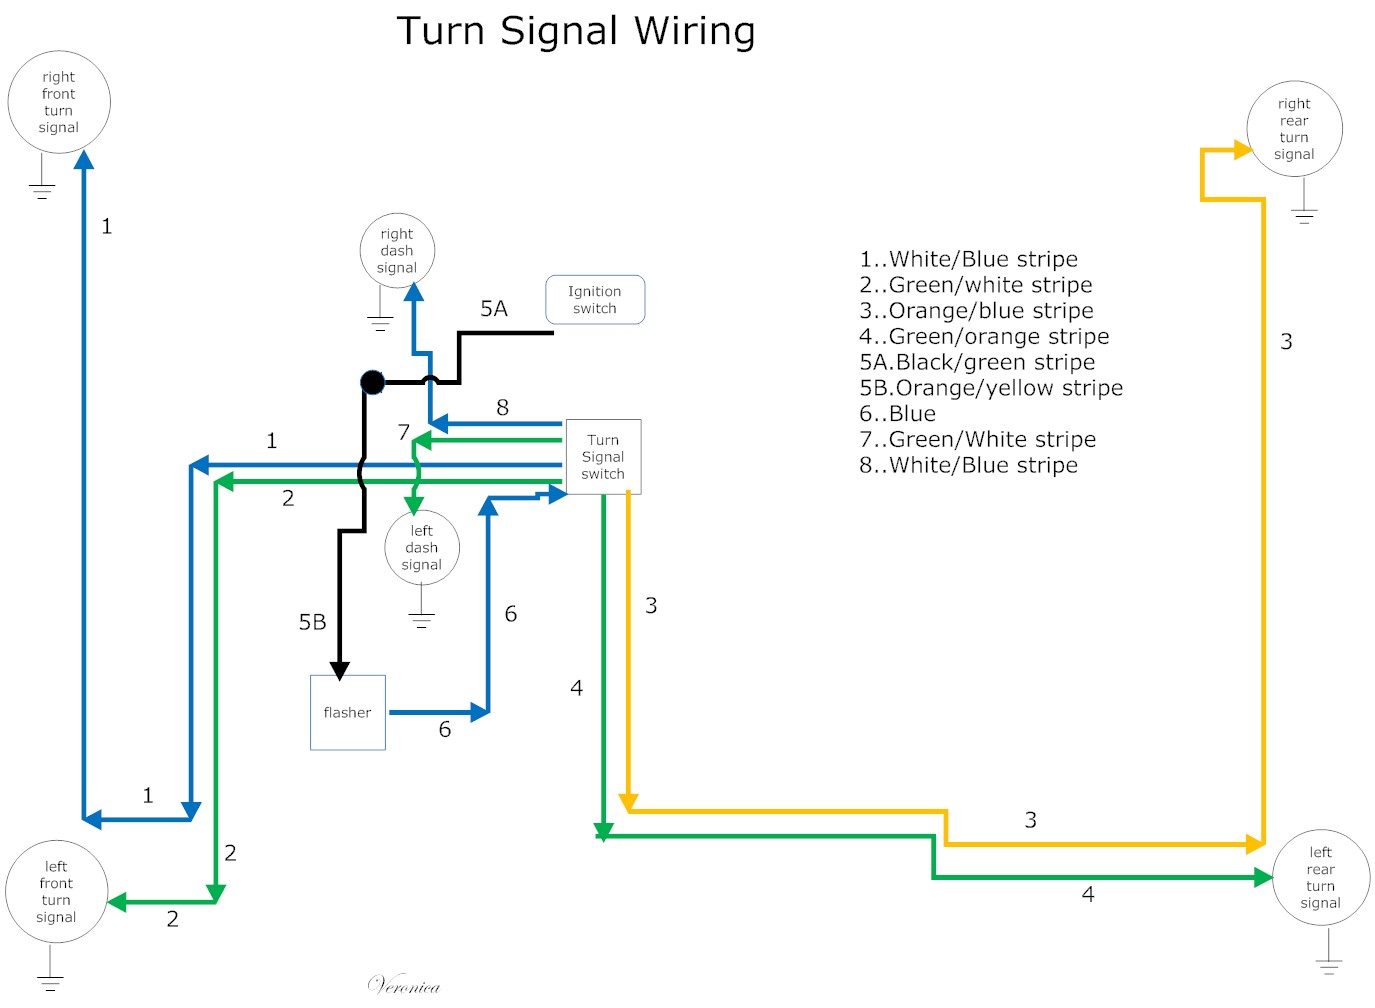 Turn+signal+Wiring the care and feeding of ponies 1965 mustang wiring diagrams 1967 mustang turn signal wiring diagram at cos-gaming.co